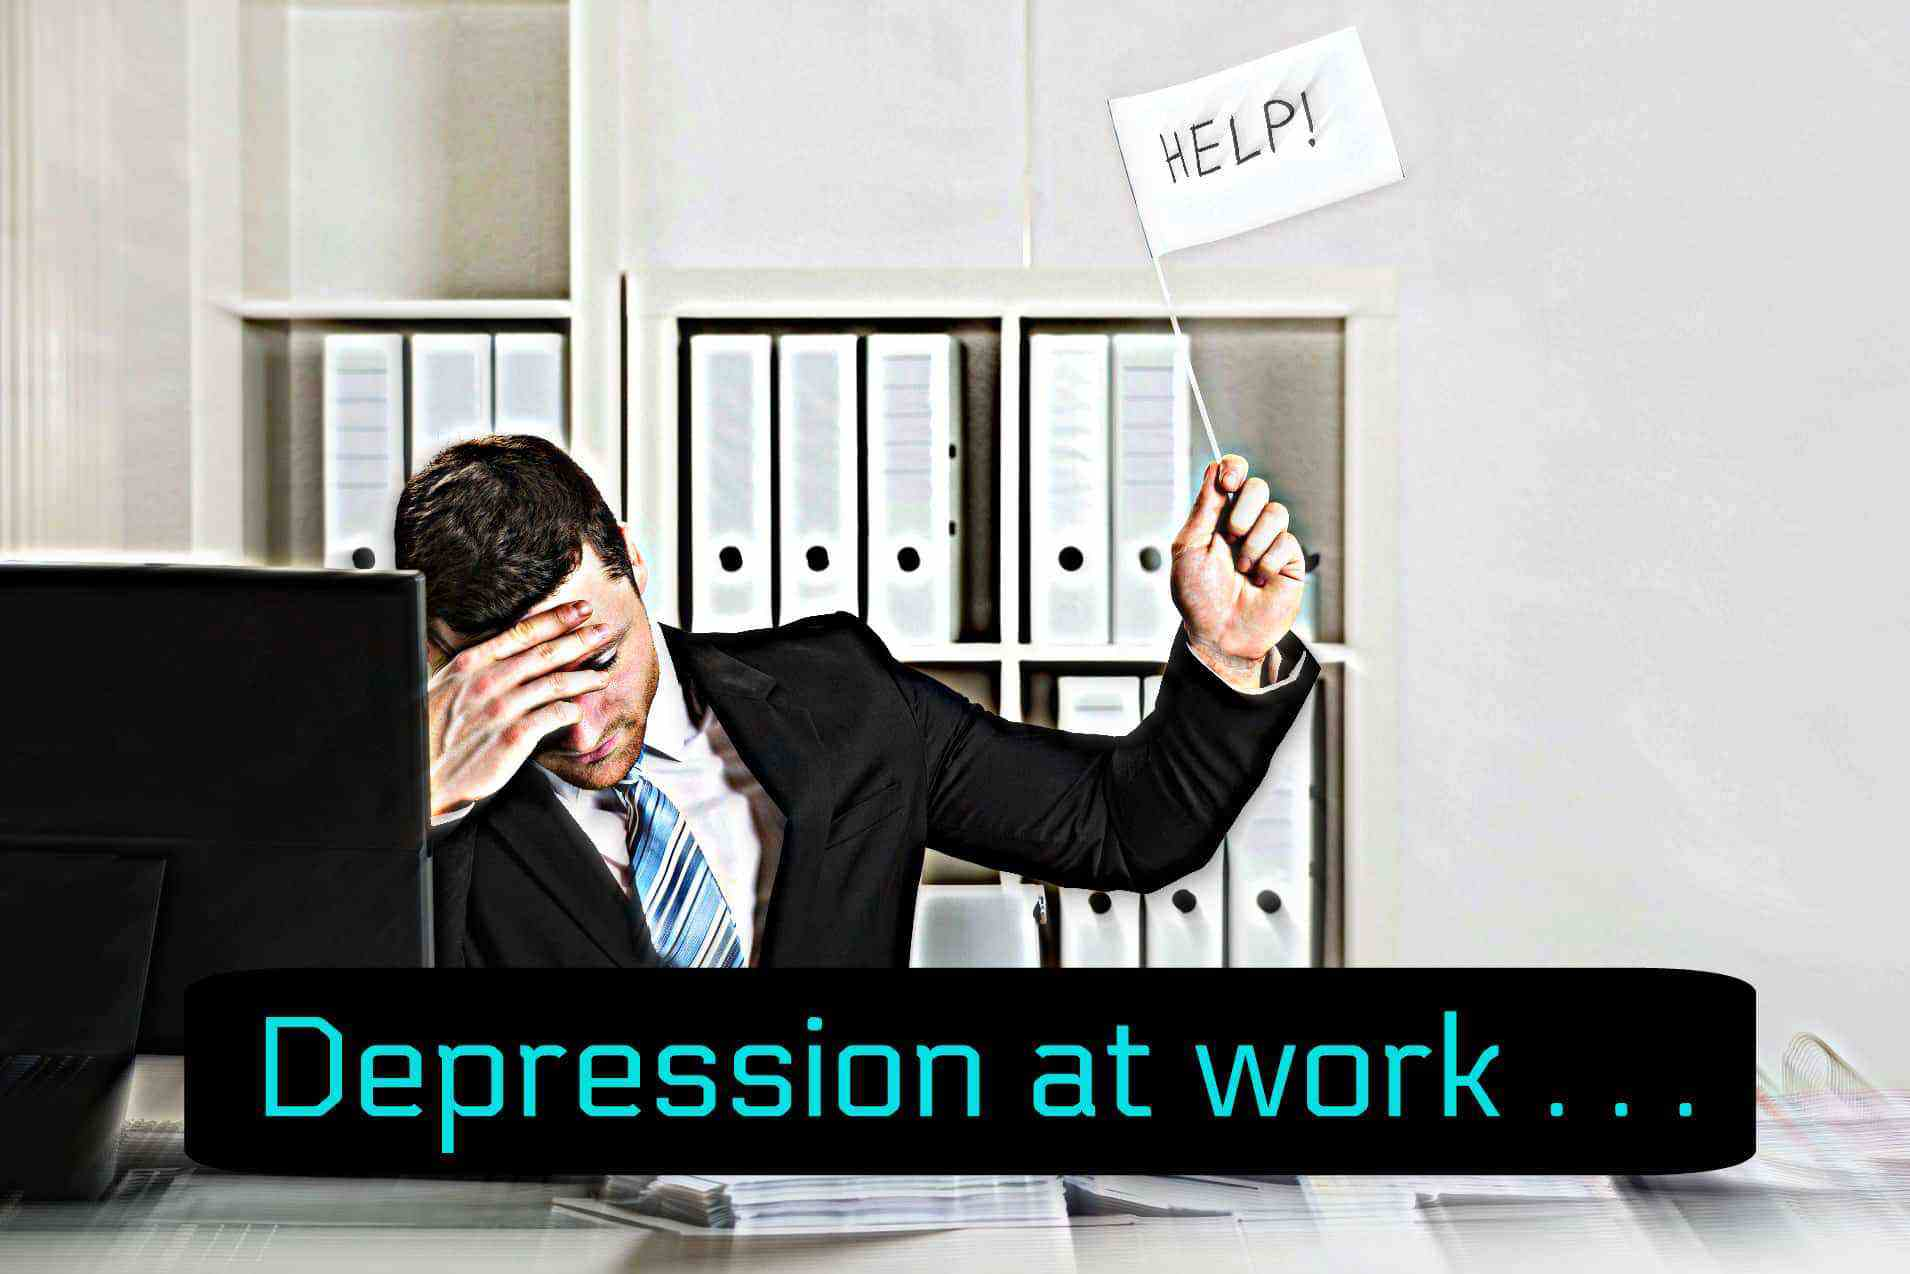 Depression Office Worker Holding Up Help Sign